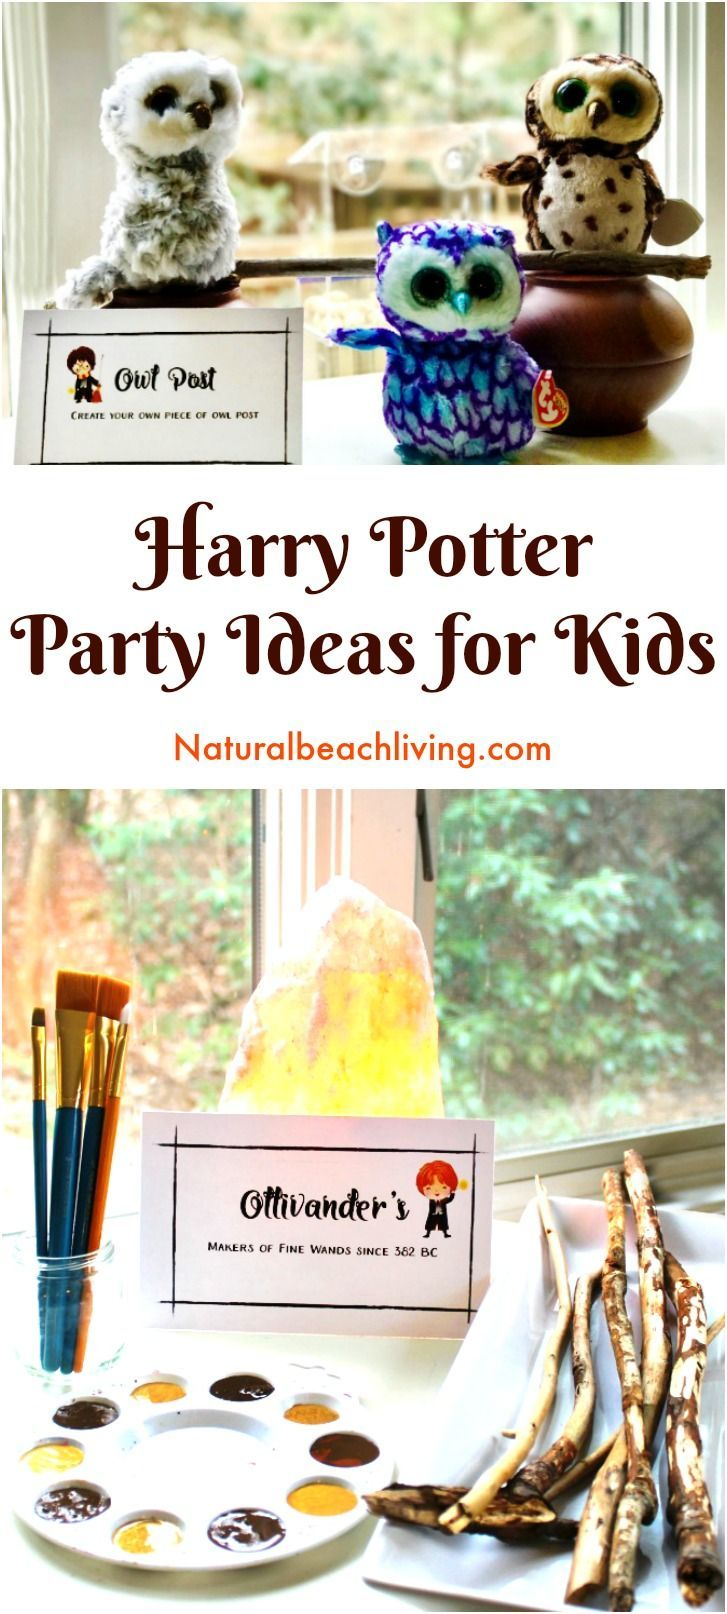 The Best Harry Potter Party Ideas and Printables for Kids, Harry Potter Activities, Kids party ideas, Birthday party ideas, Harry Potter Slime & More